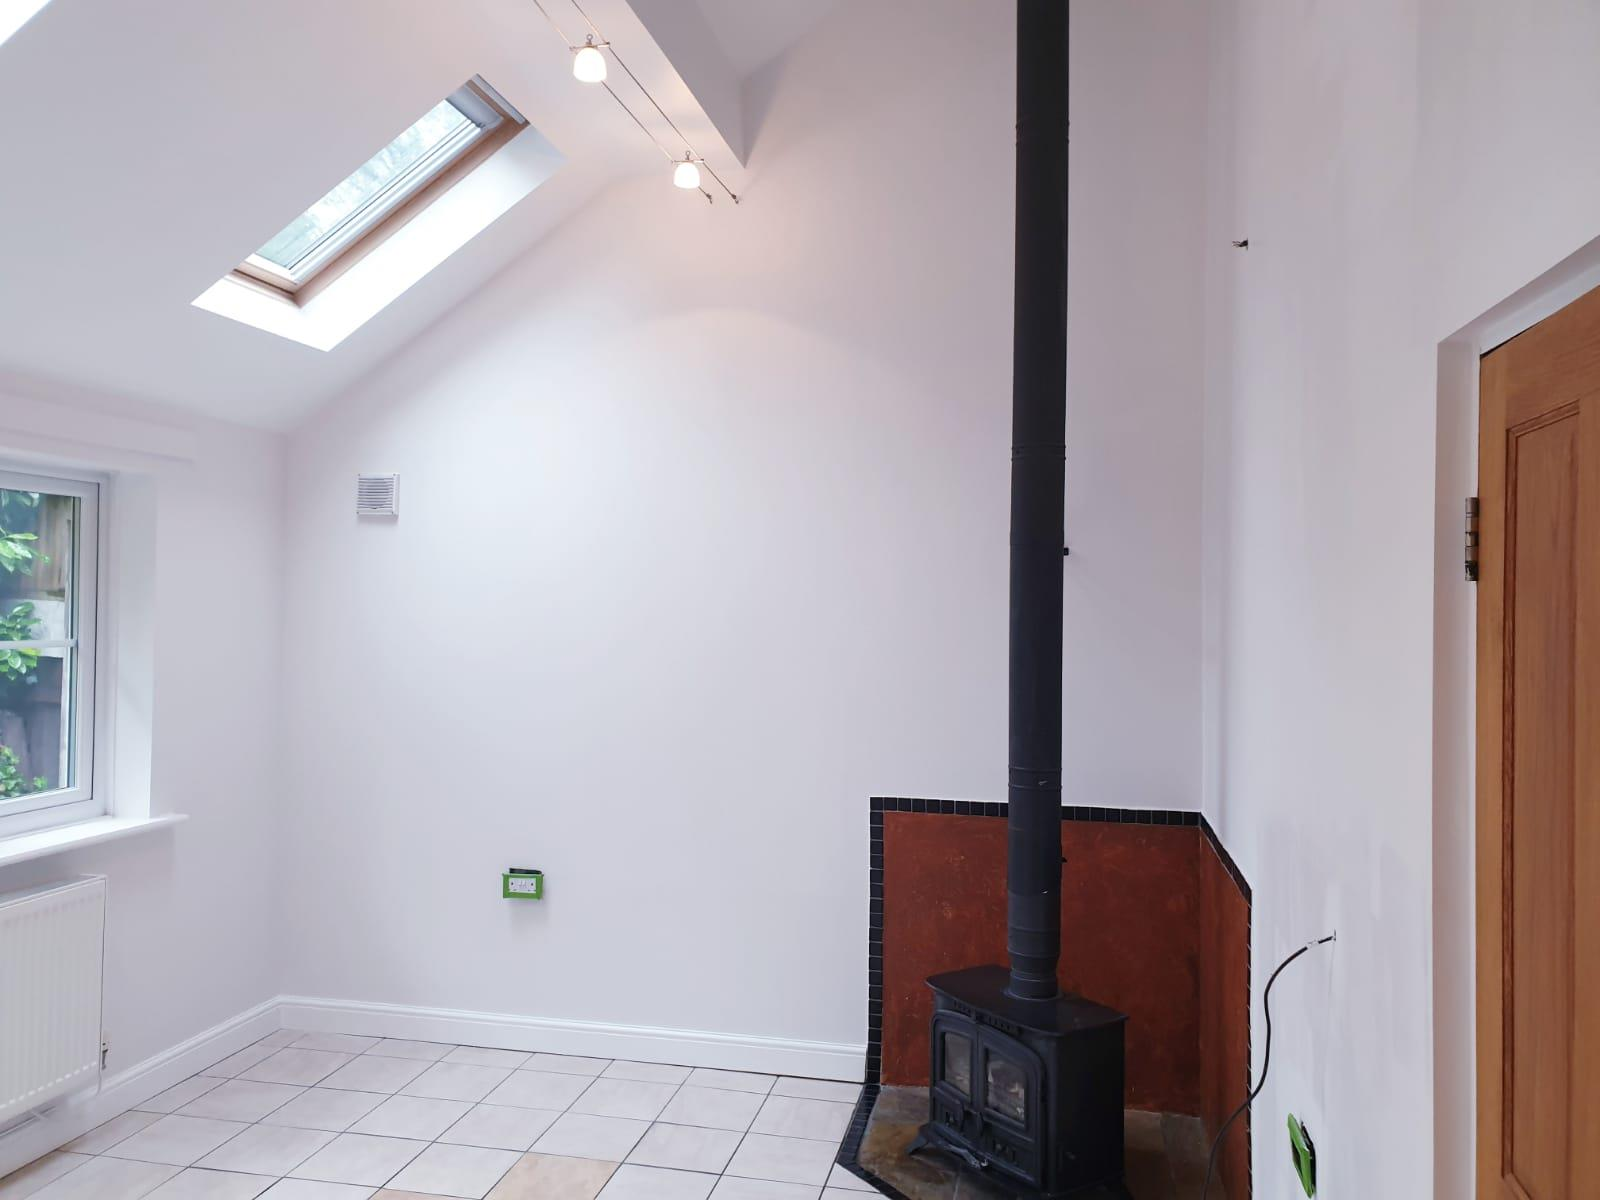 High ceiling room painted